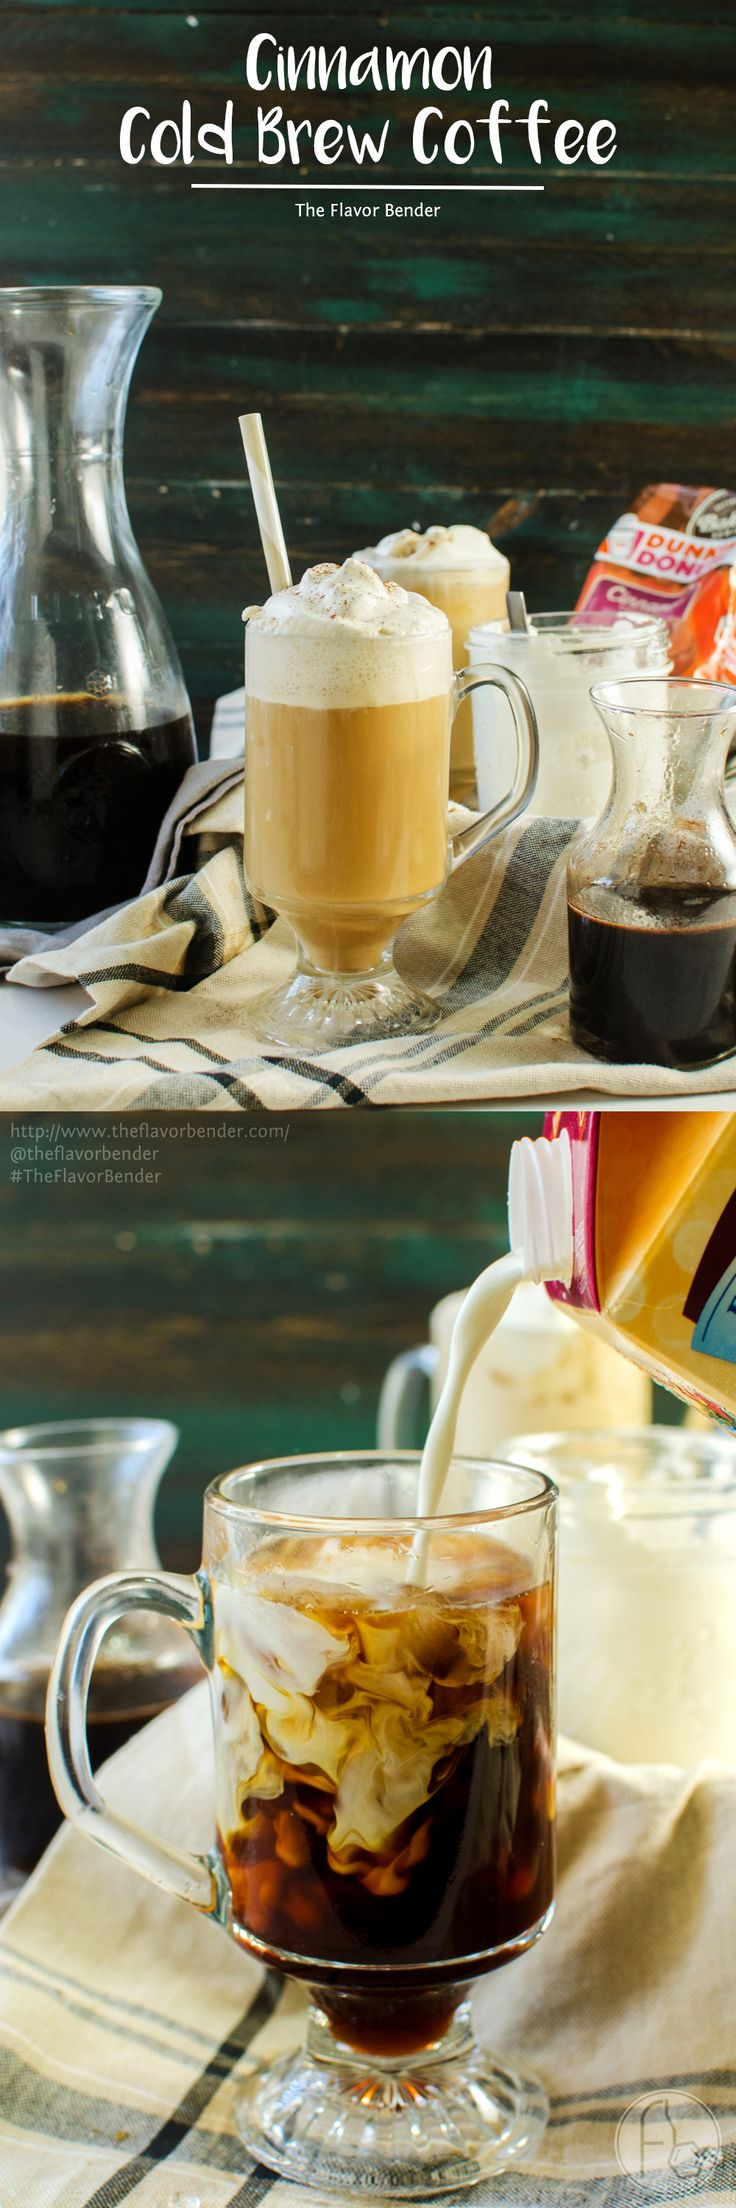 Cinnamon Flavored Cold Brew Coffee - Easy Cold Brew Coffee with pre ground fresh coffee. Make a delicious Cinnamon flavored Cold Brew coffee or frappucino with Cinnamon infused syrup, Cinnamon flavored Coffee and Half and half! Perfect indulgent cafe style Coffee in the comfort of your home! @krogerco @DunkinDonuts #CoffeeCreamerCombos [ad]